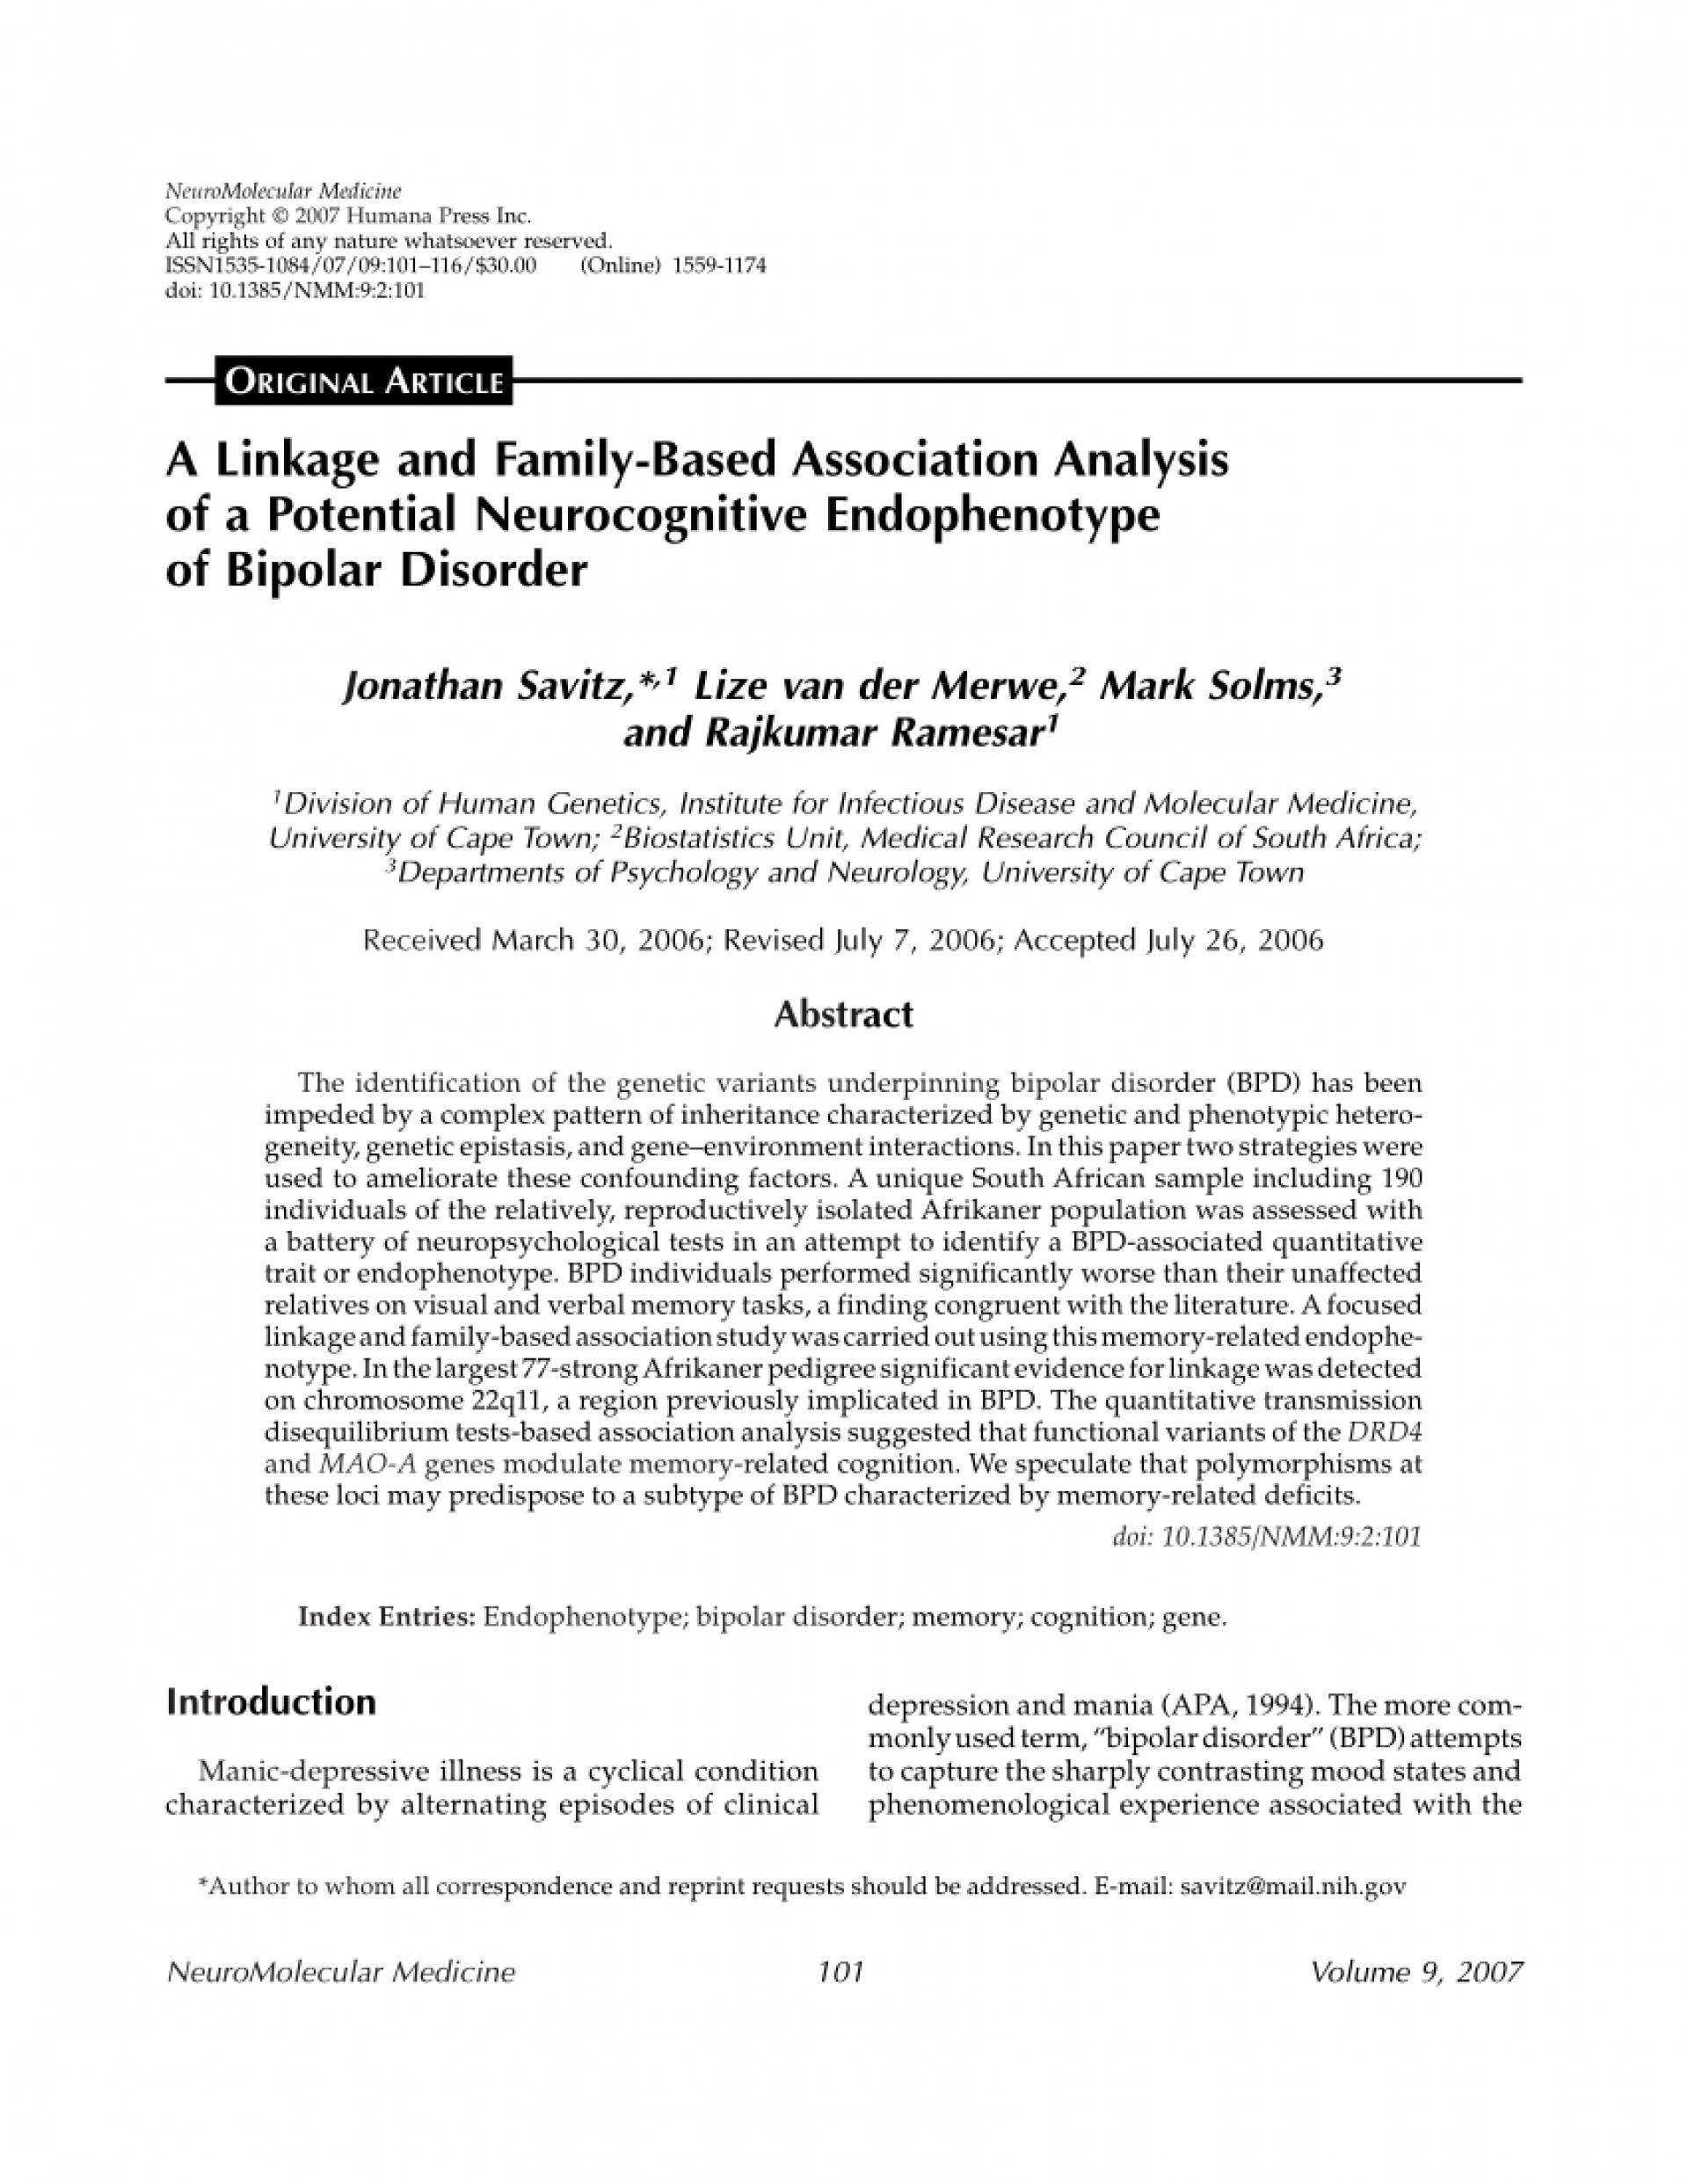 013 Apa Research Paper On Bipolar Disorder Rare Introduction 1920